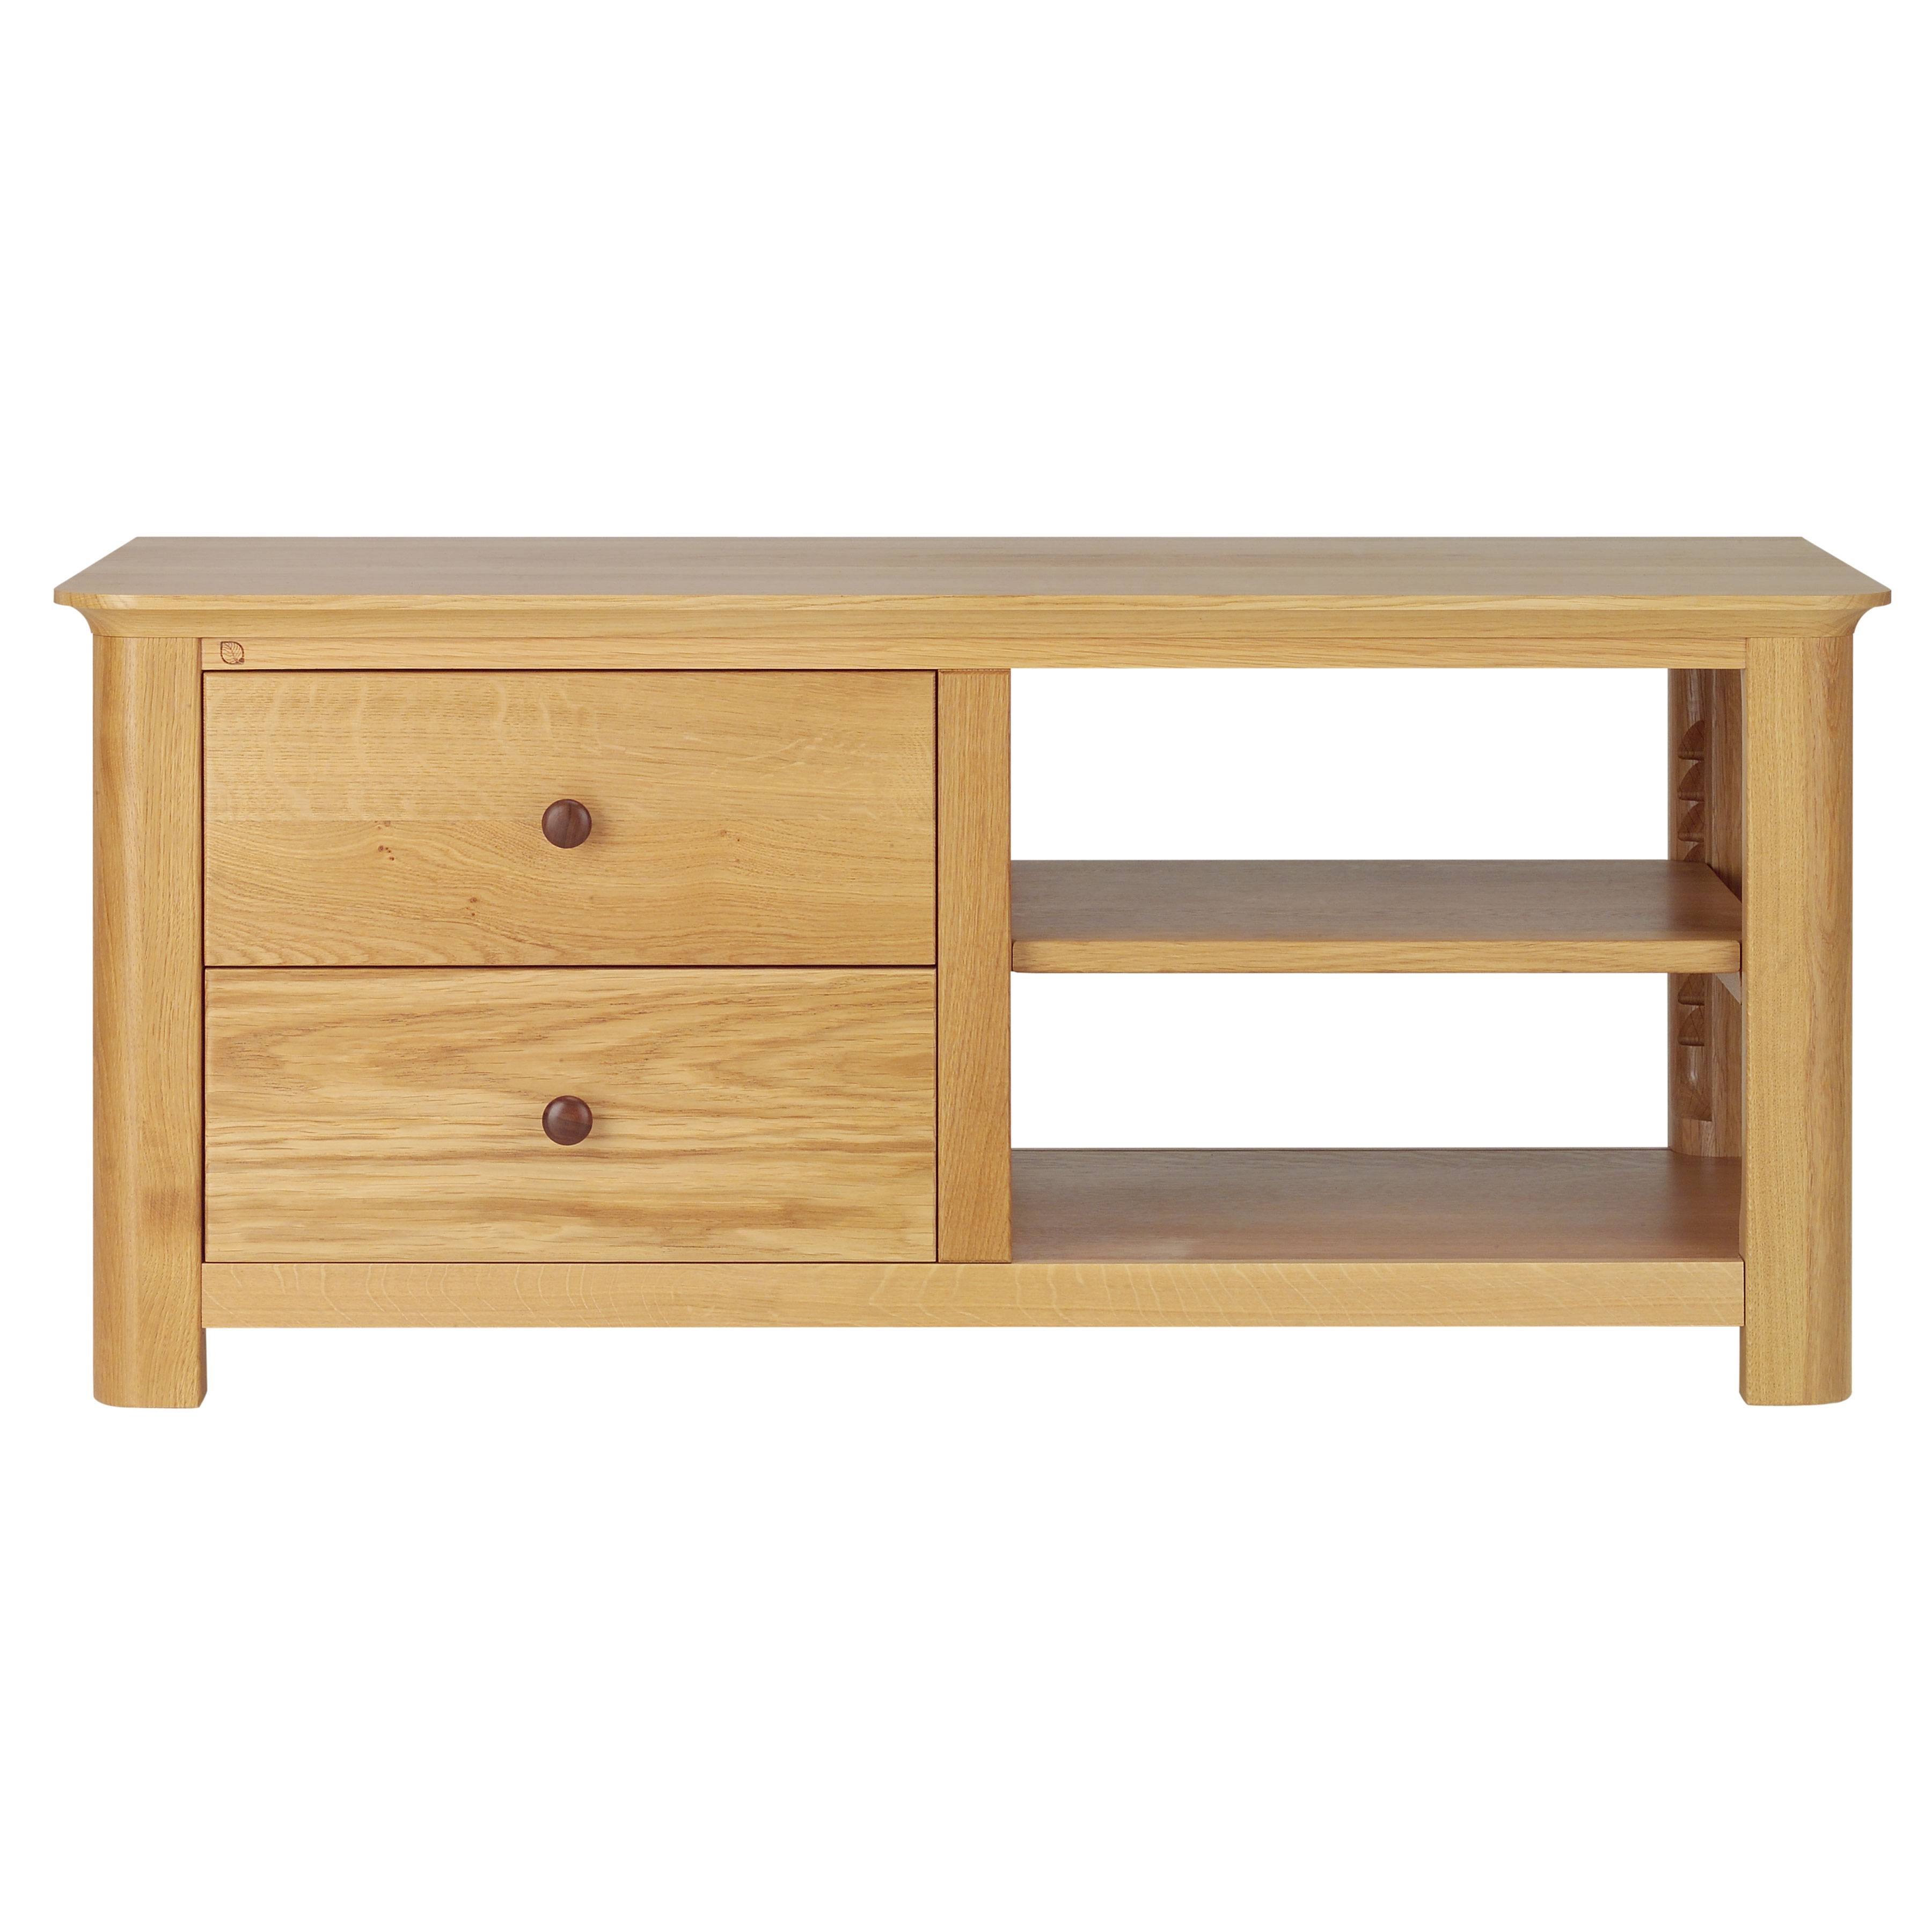 Small Tv Cabinet | Delmaegypt Intended For Small Oak Tv Cabinets (View 15 of 15)